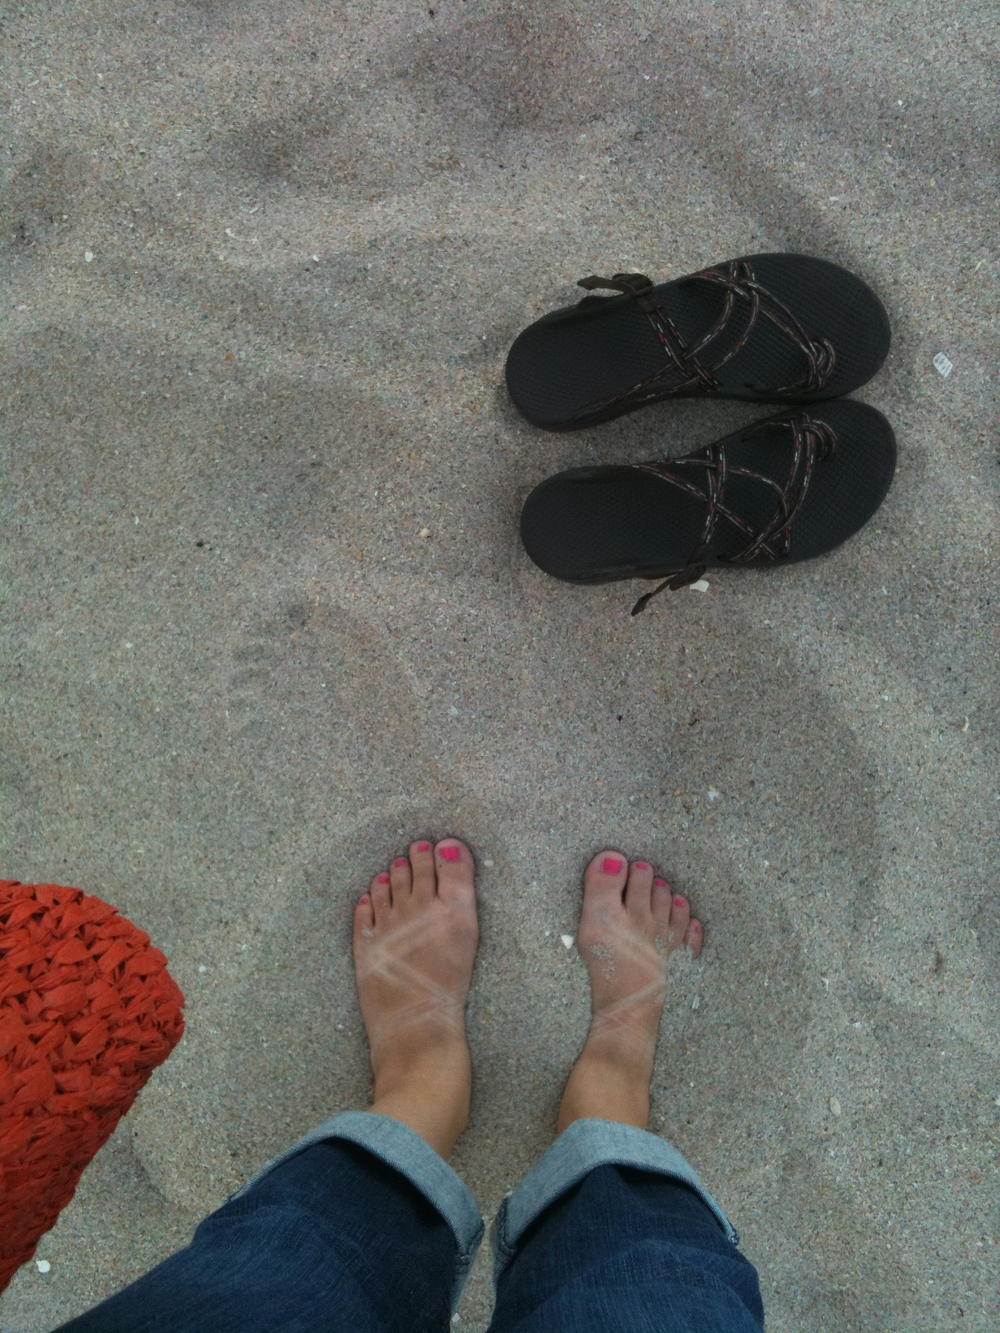 My Chacos in Ft. Lauderdale, 2011.